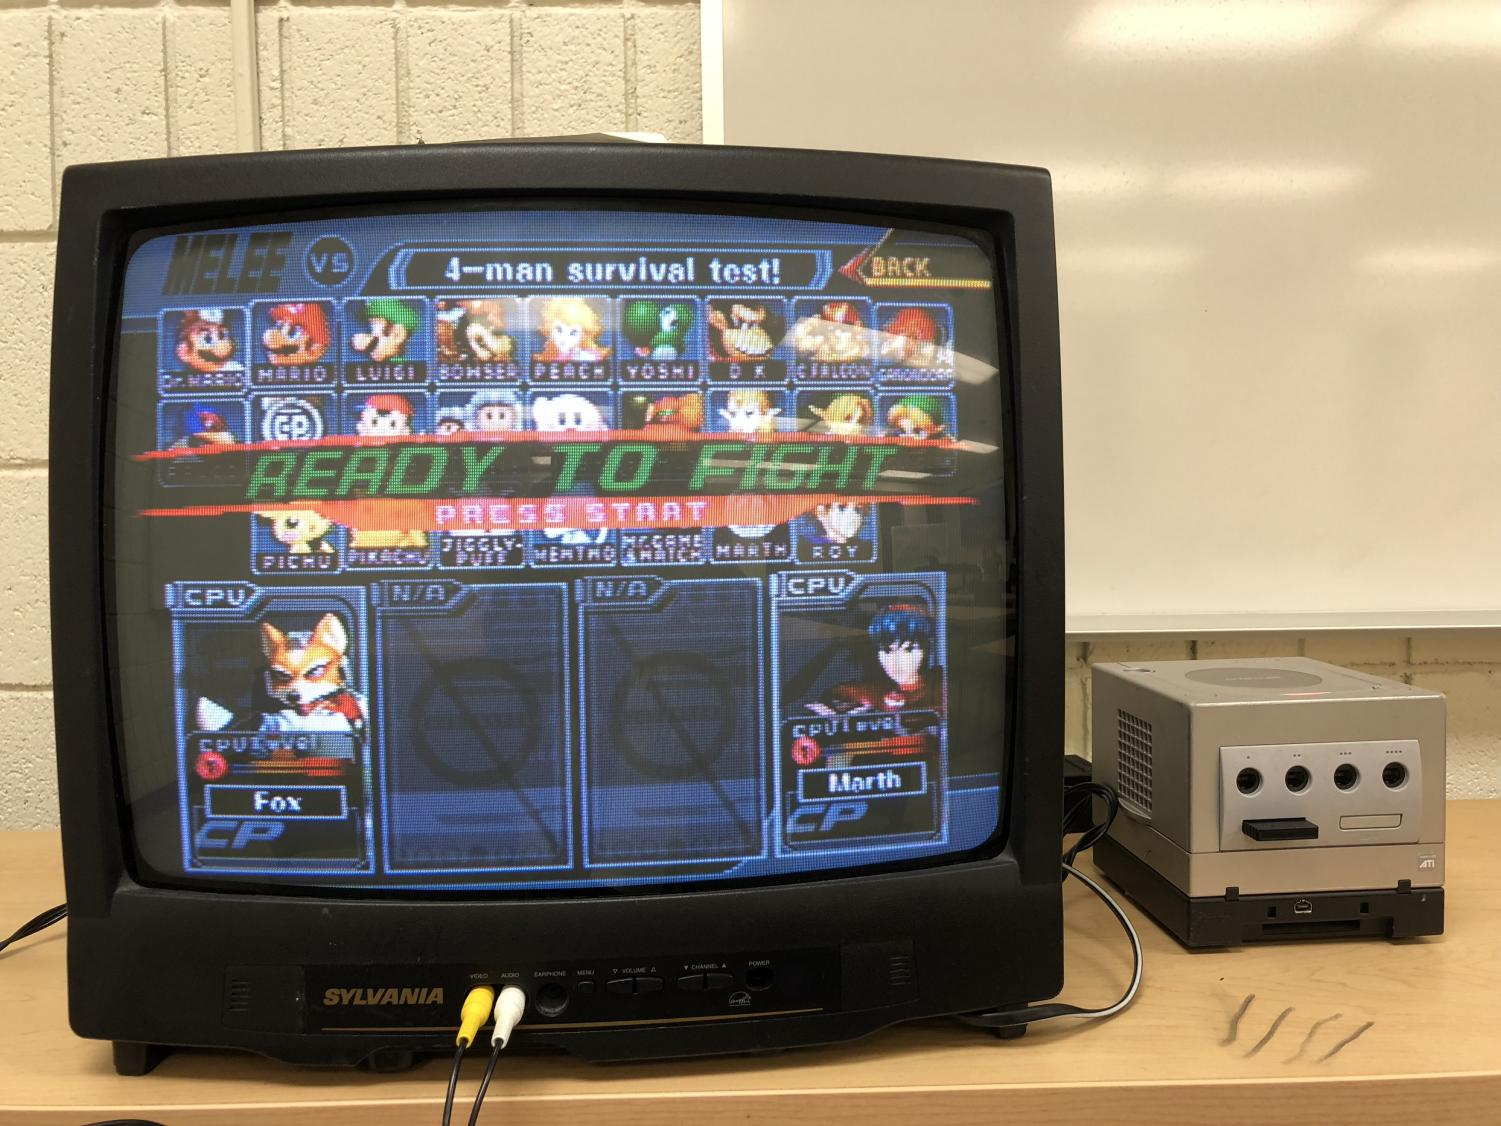 Marshall Smashers meets Mondays at 7 p.m. in Harris Hall Room 102 to compete in playing various video games.